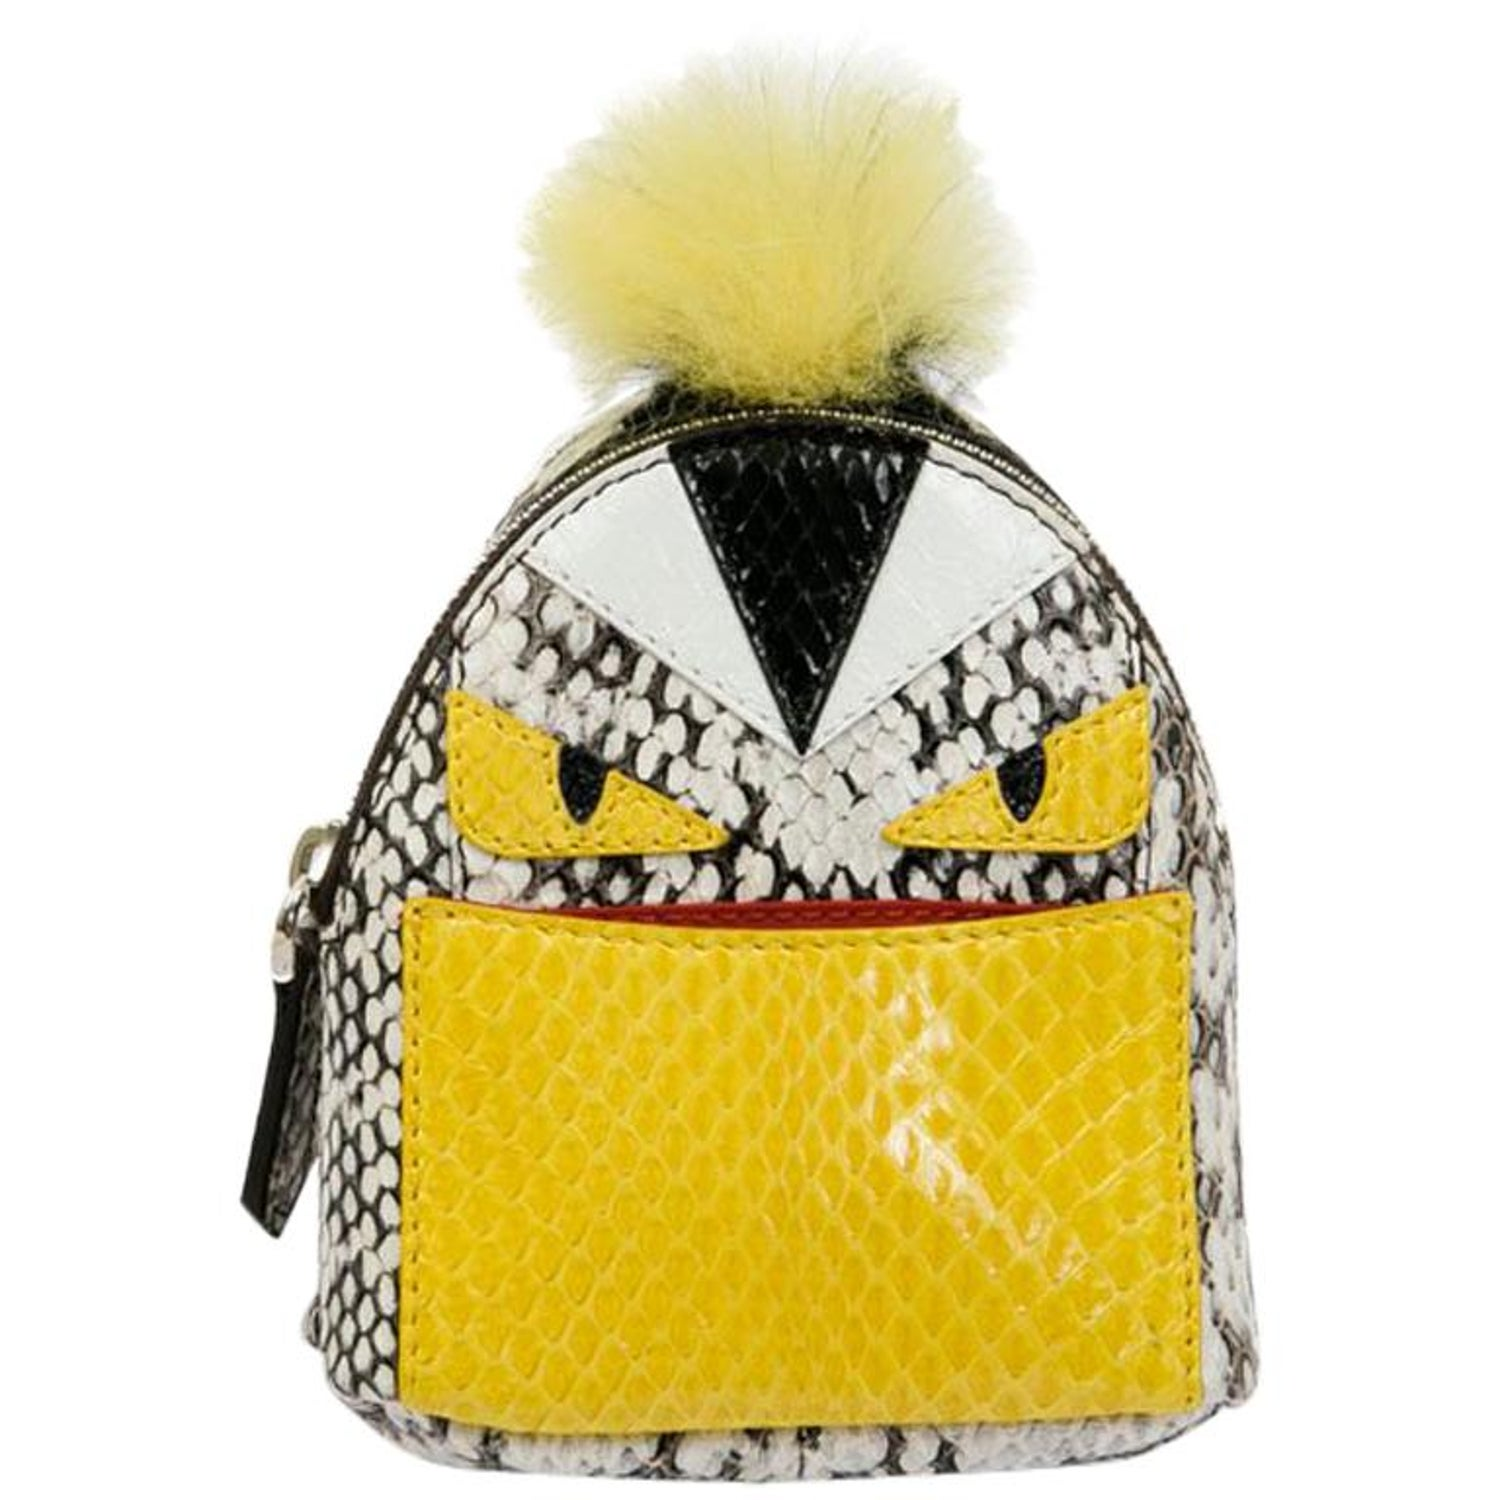 bc99e2bedc65 FENDI Monster Bag Mini Backpack Charm in Multicolored Python and Fur For  Sale at 1stdibs